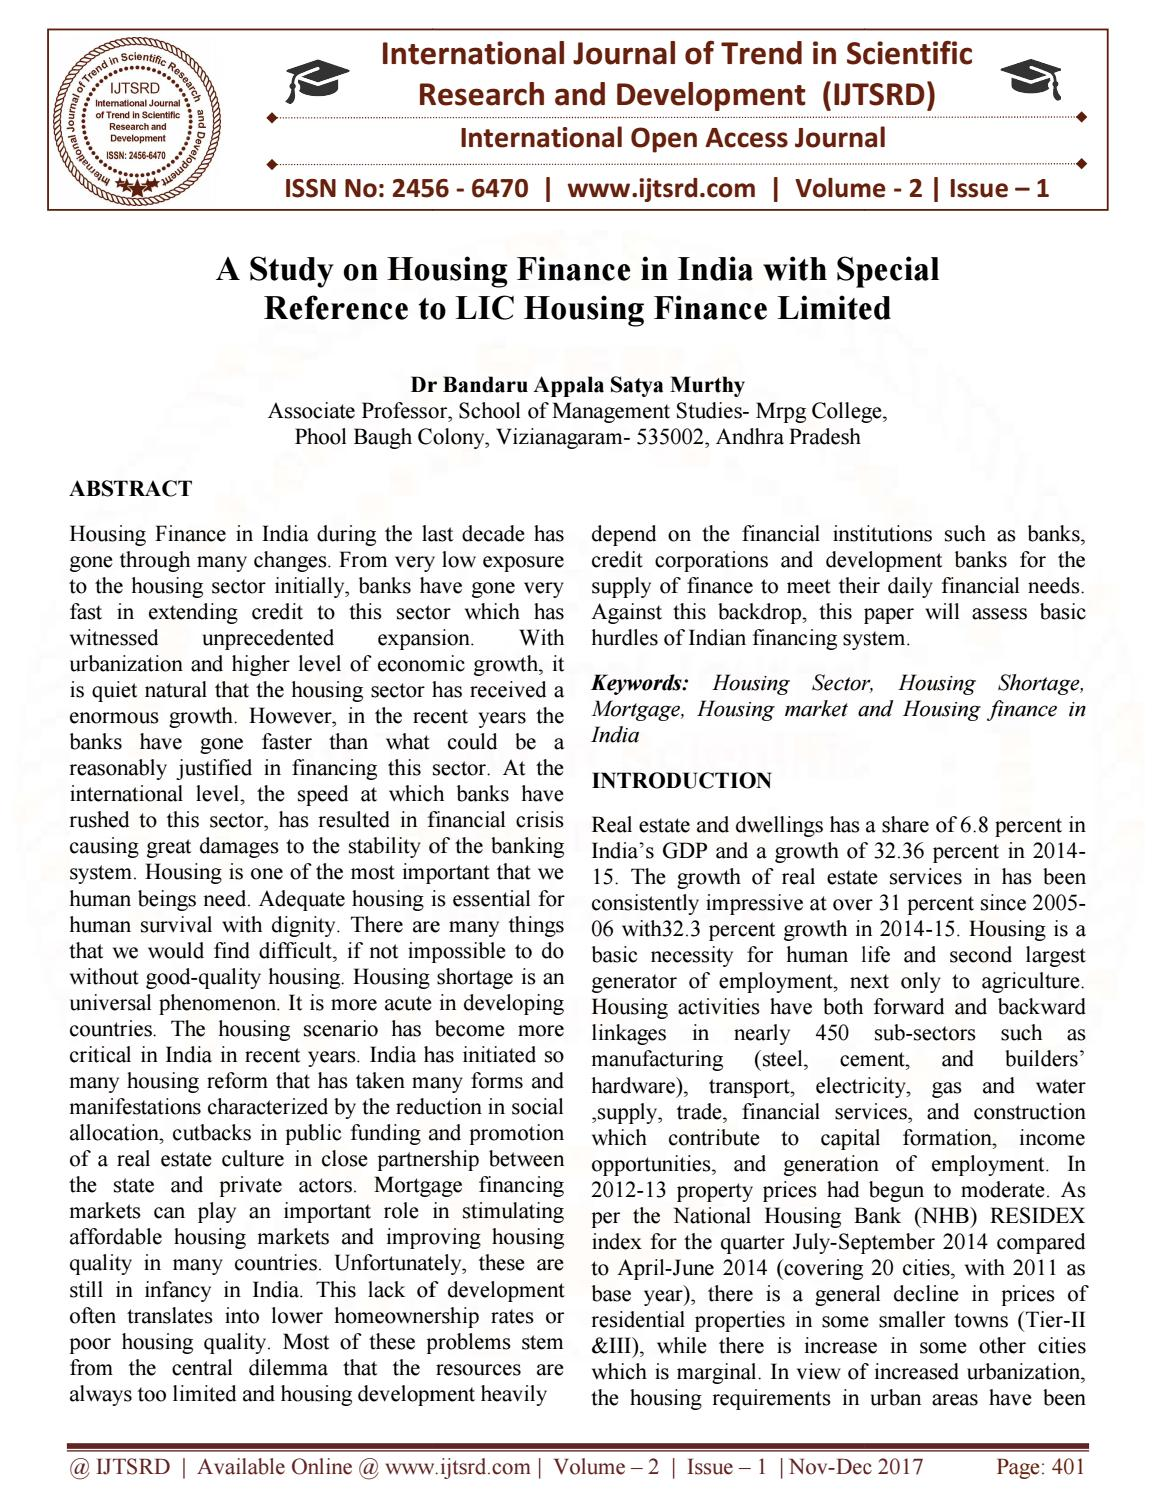 A Study on Housing Finance in India with Special Reference to LIC Housing  Finance Limited